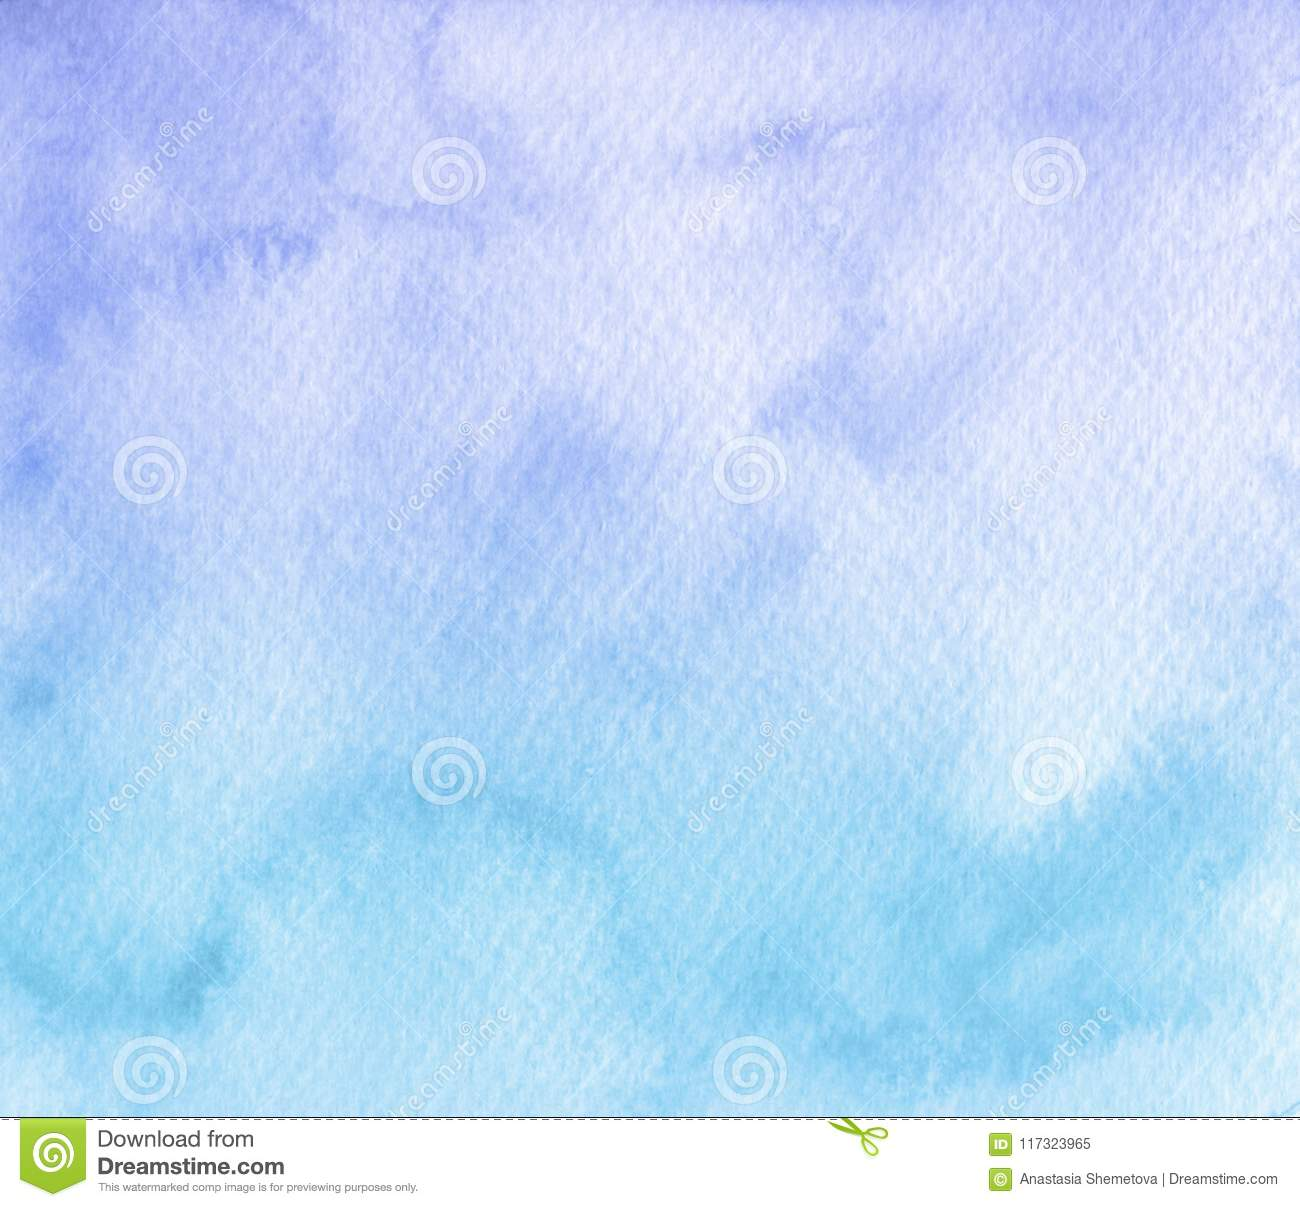 Hand painted soft blue watercolor texture background. Usable for